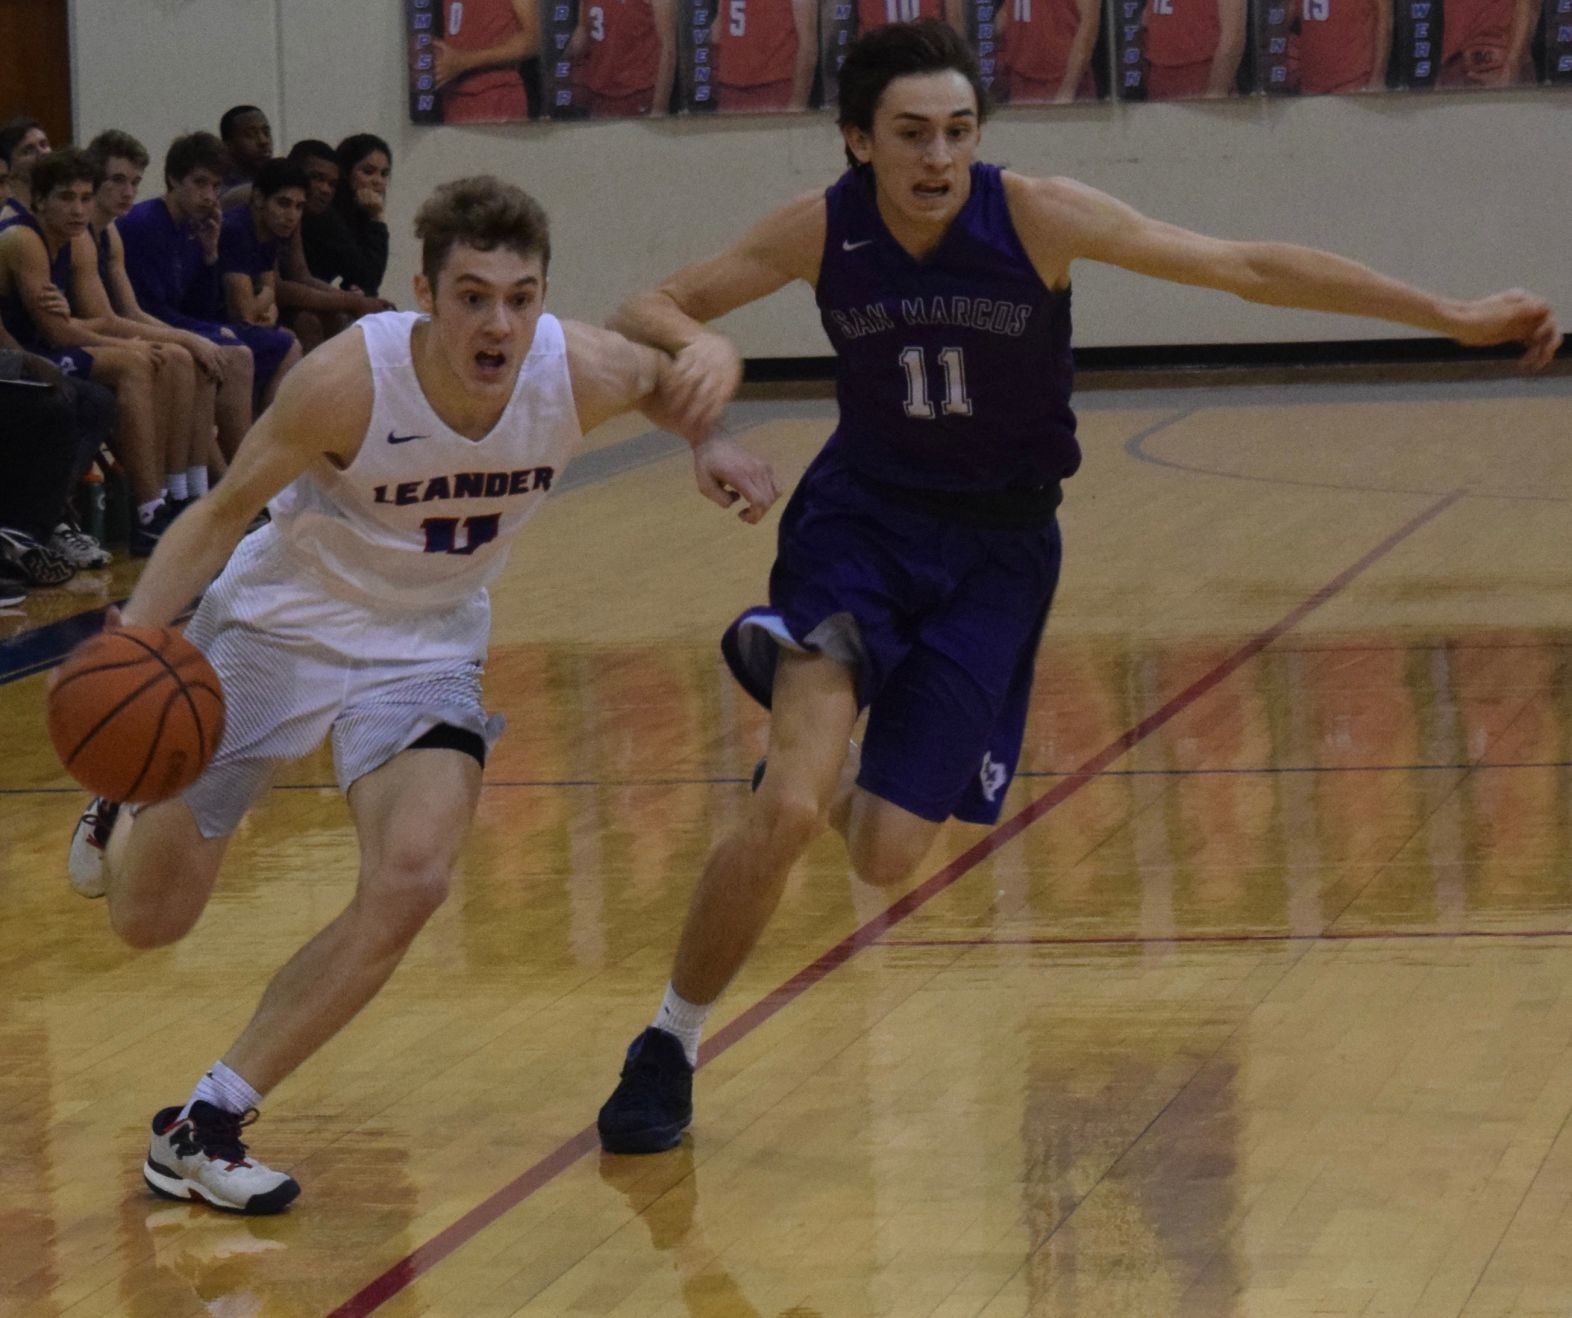 Kobe Thompson and teammates hope to lead Leander to the playoffs for the first time since 2014. The Lions finished in fourth place in the Leander Lion Classic last weekend.